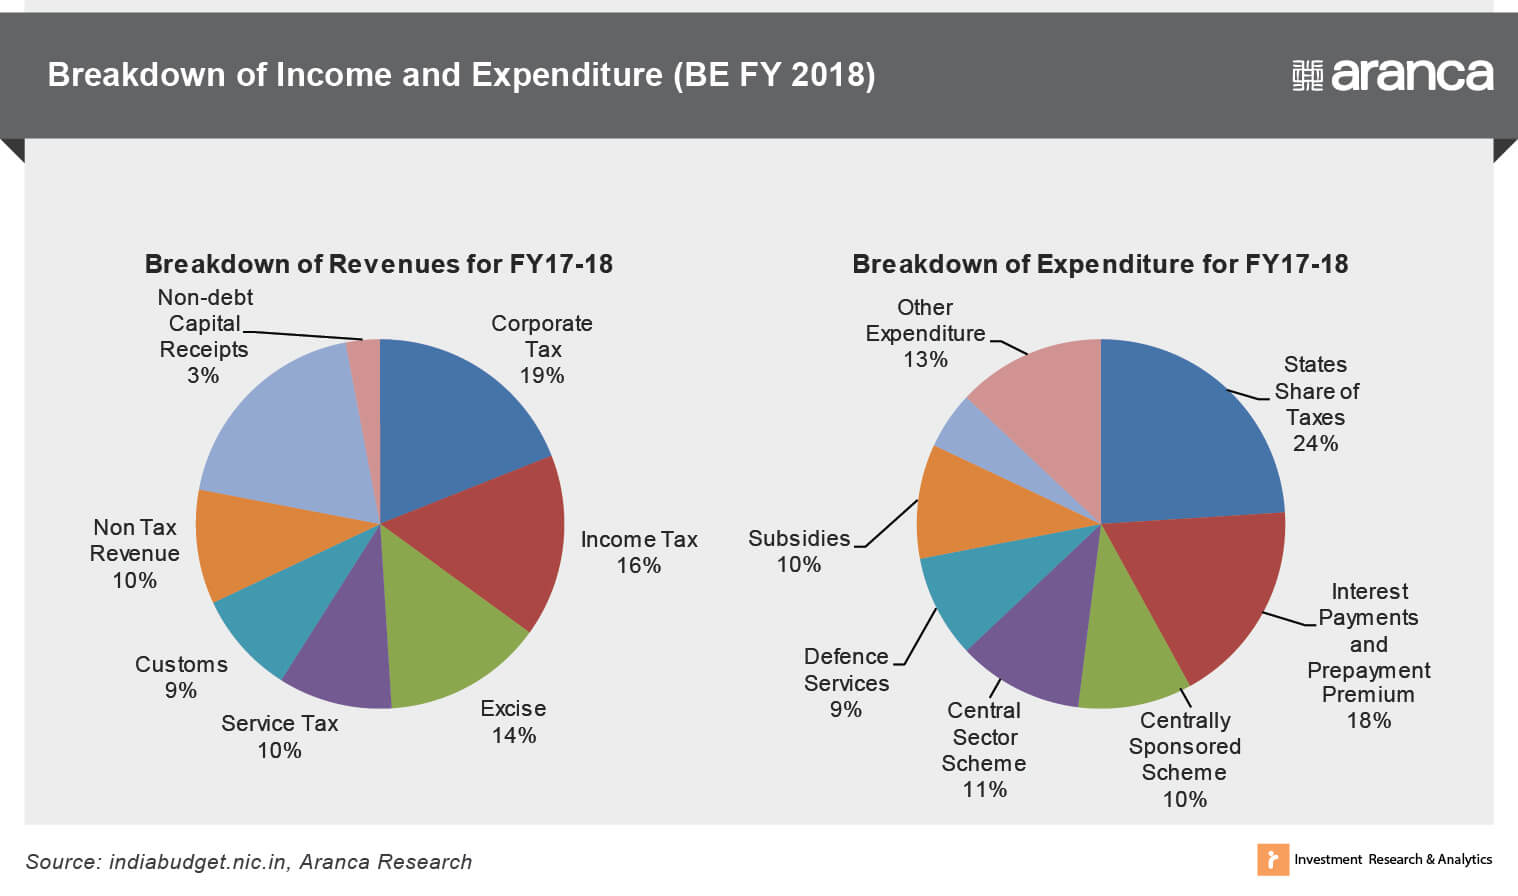 Breakdown of Income and Expenditure(FY 18)